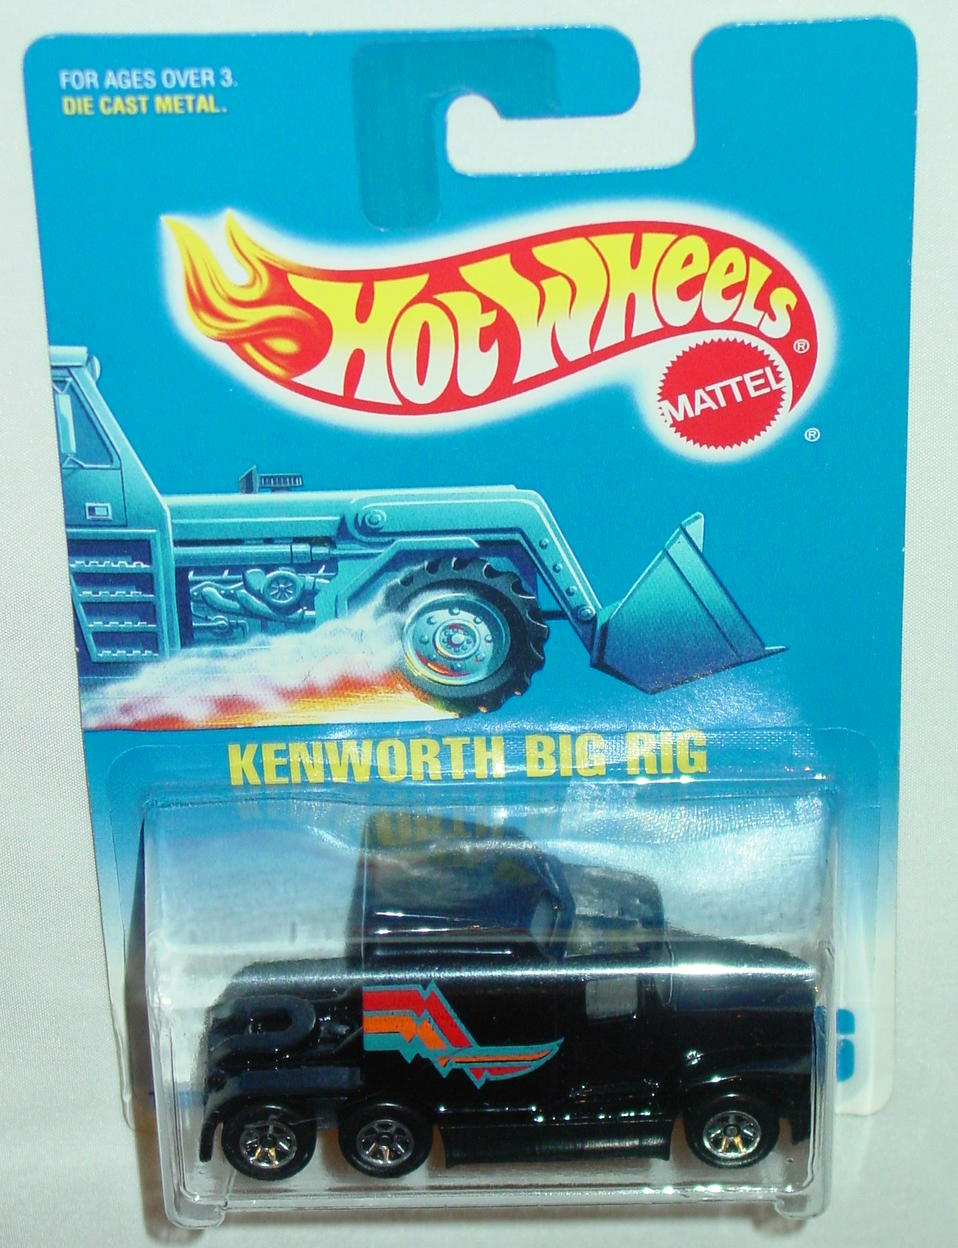 Blackwalls 1790 - 076 Kenworth Big Rig Black SP7